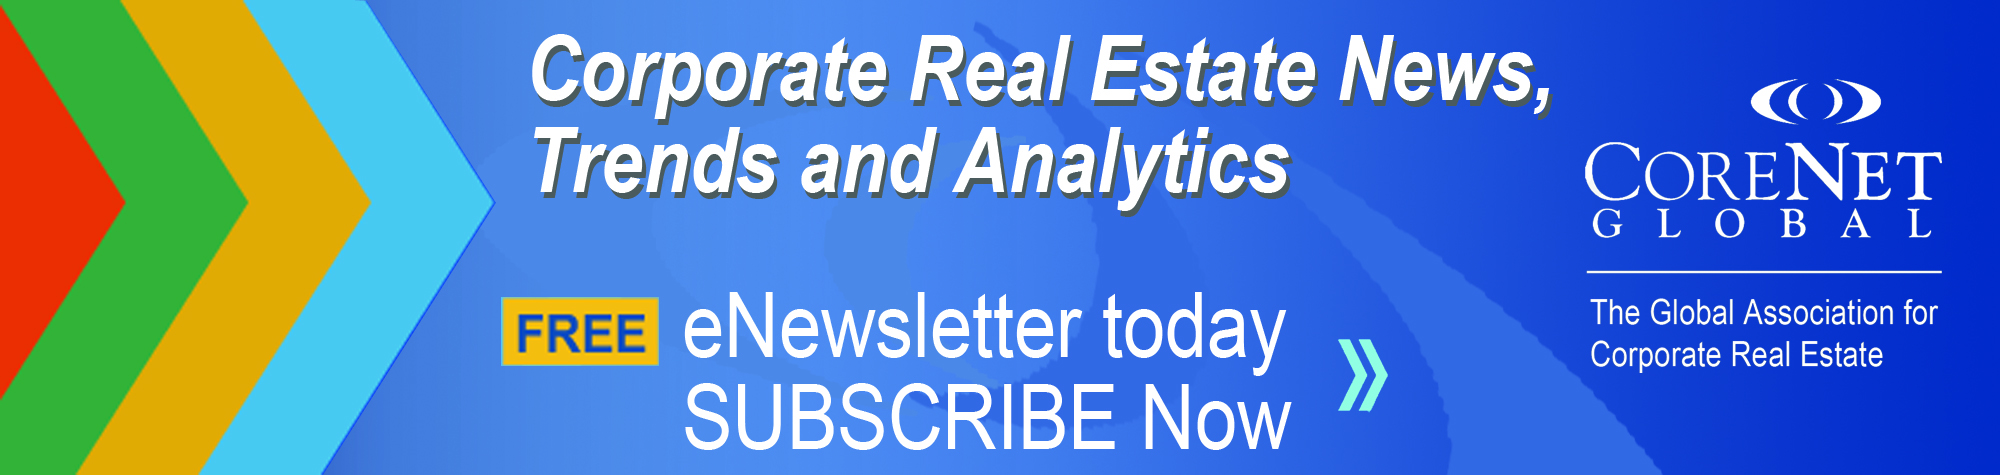 Newsletter Subscribe banner